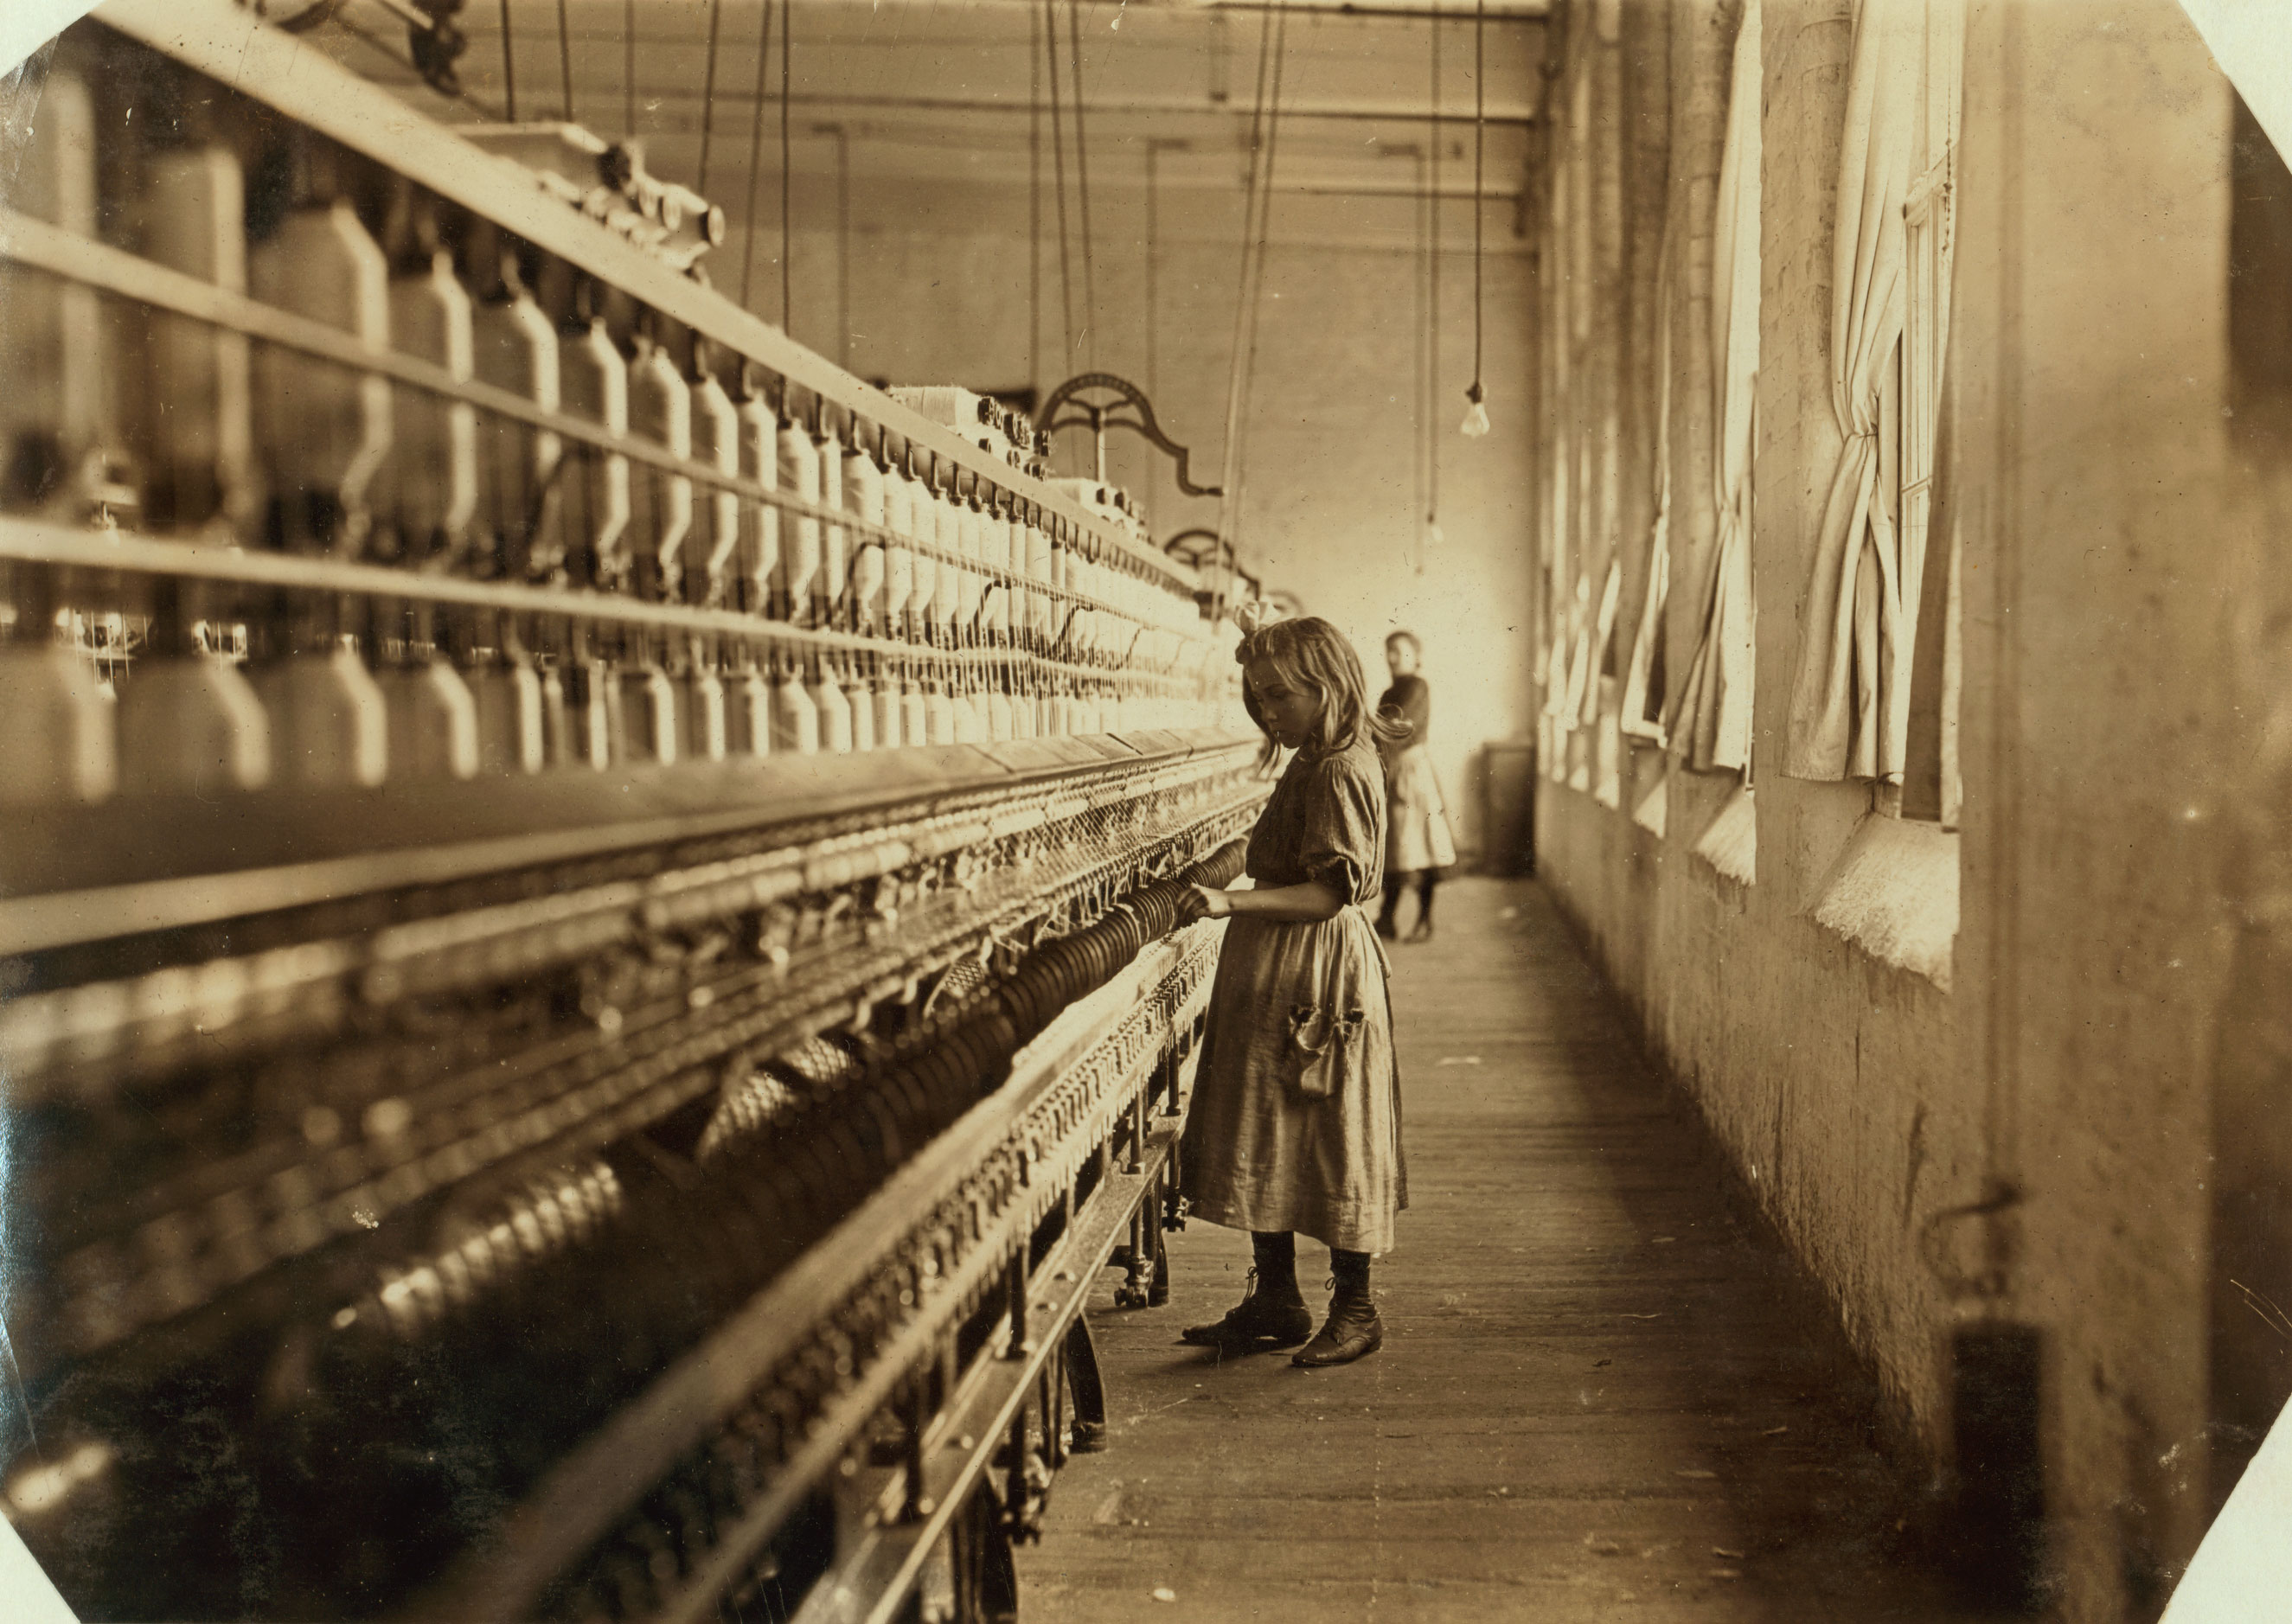 Sadie Pfeifer, 48 inches high, has worked half a year. One of the many small children at work in Lancaster Cotton Mills. Nov. 1908. Lancaster, South Carolina.